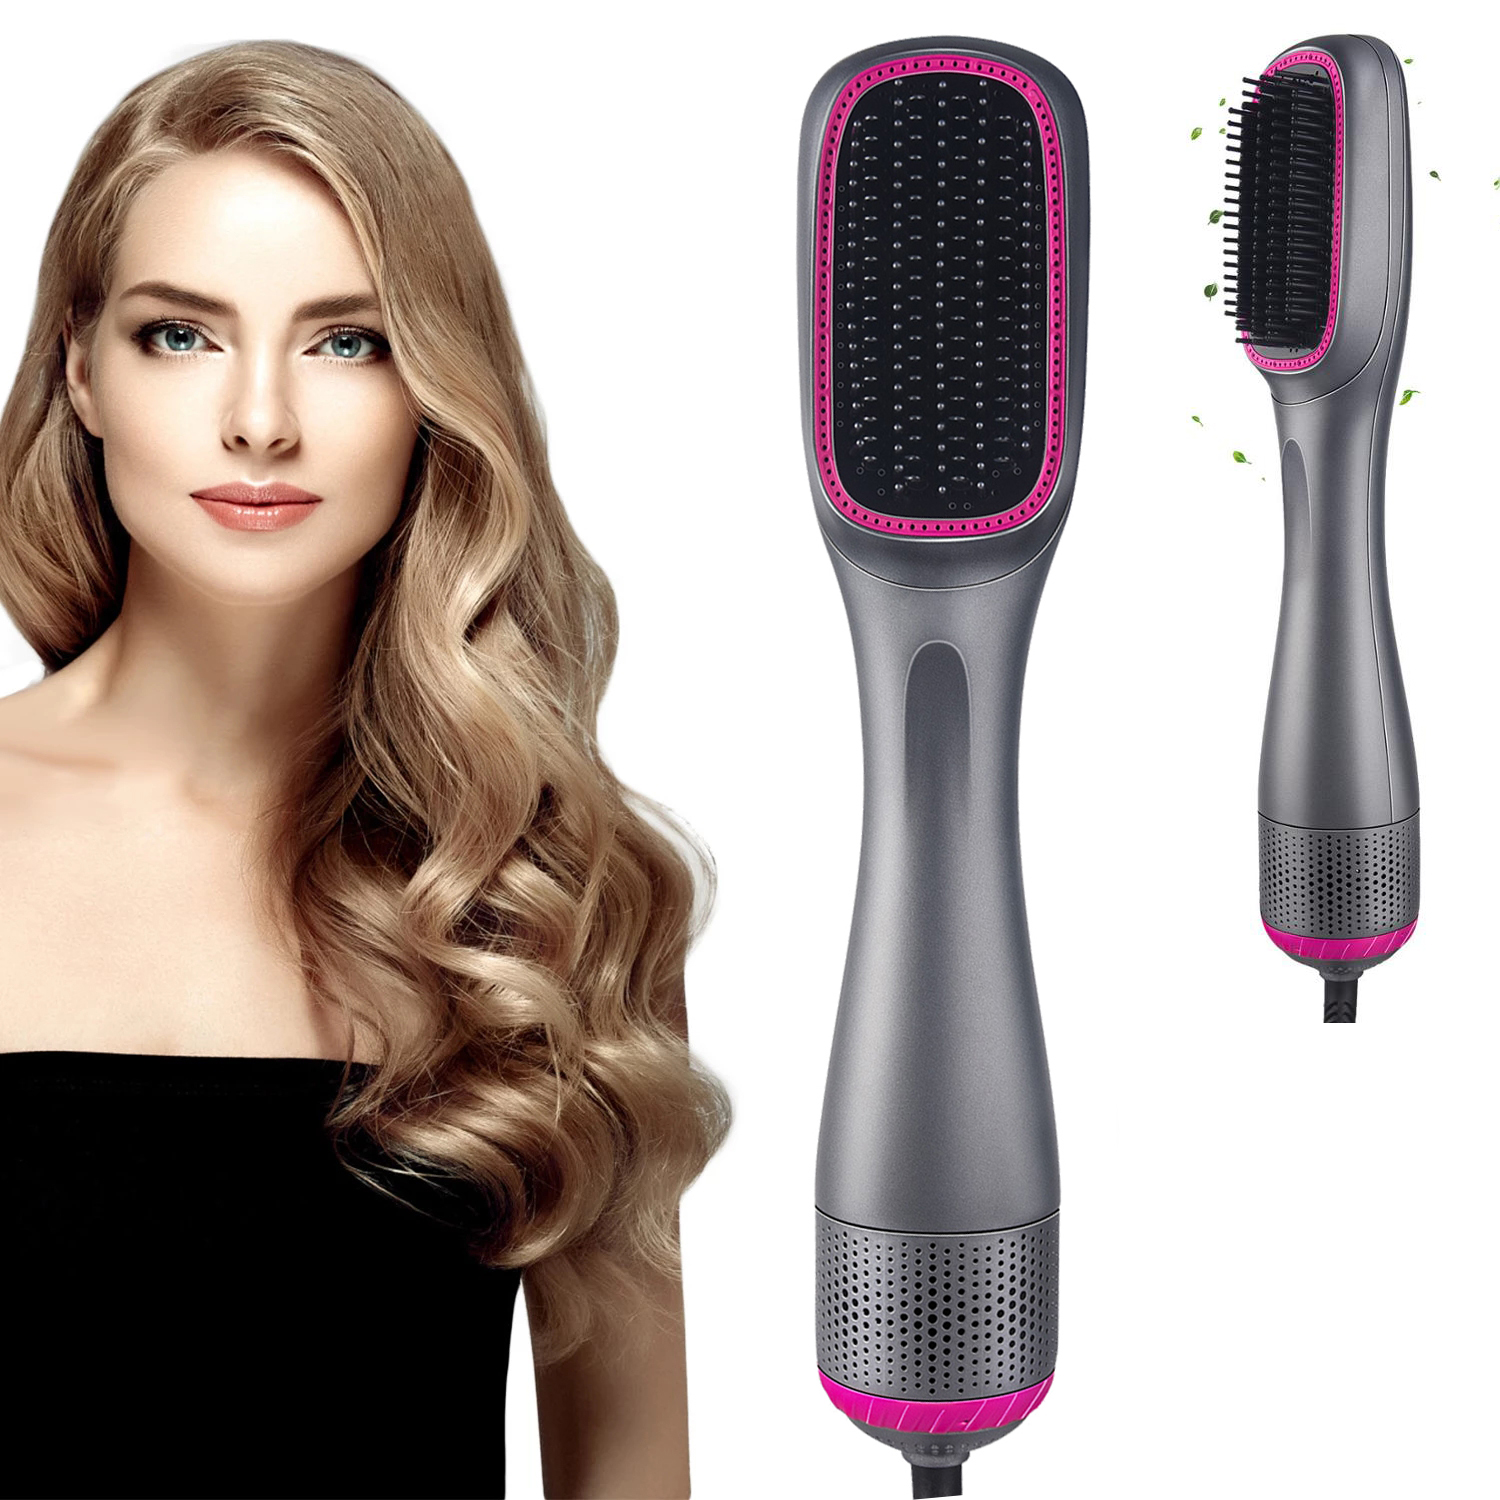 Professional Hair Dryer Blow Dryer Brush 3 In 1 One Step Hairdryer Blow Drier Hair Straightener Brush Hot Air Styling Comb